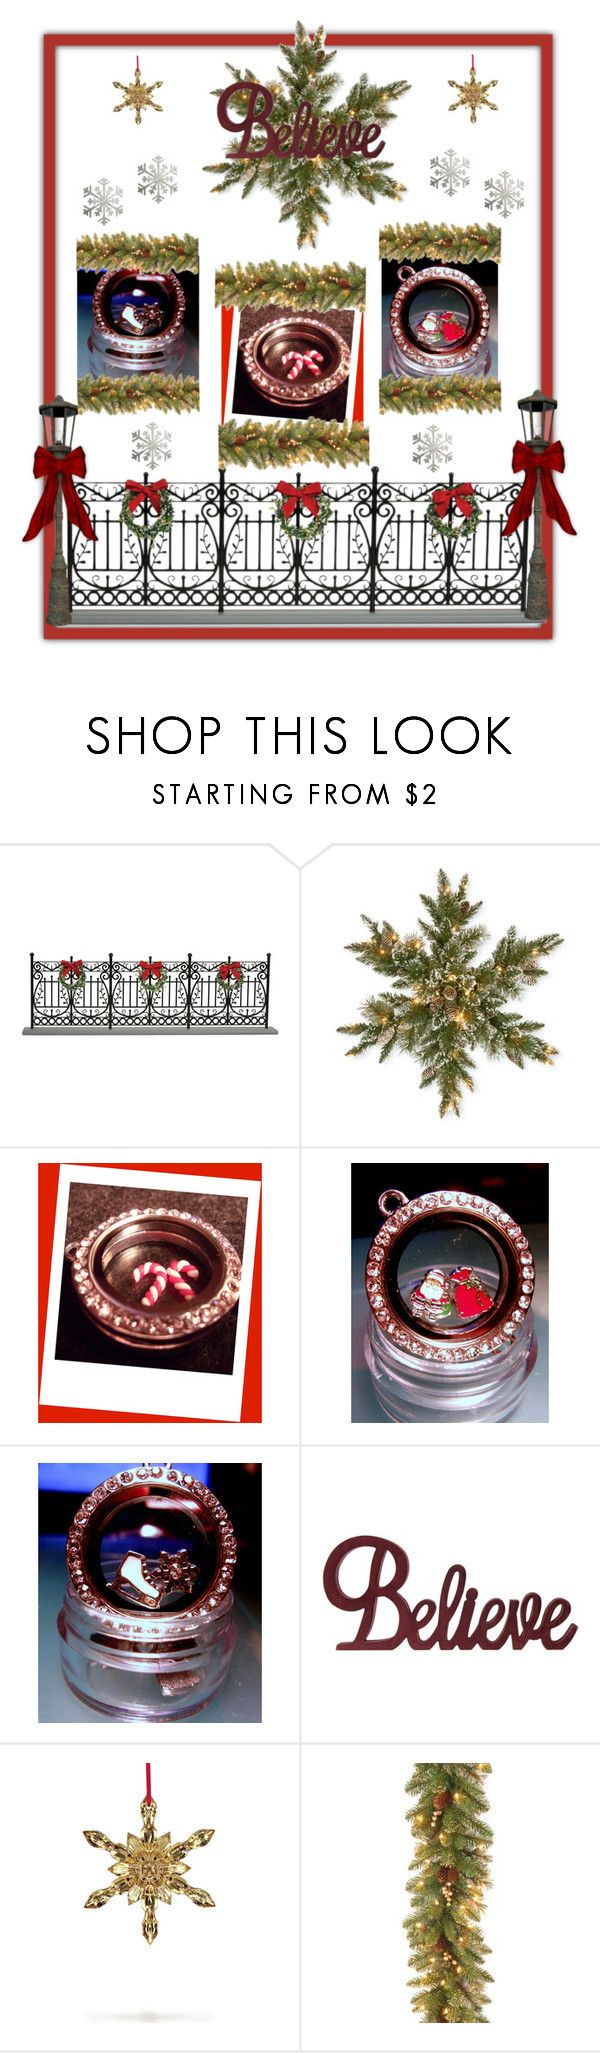 Christmas Gift Ideas by cozeequilts on Polyvore featuring Byers' Choice, National Tree Company and Pottery Barn